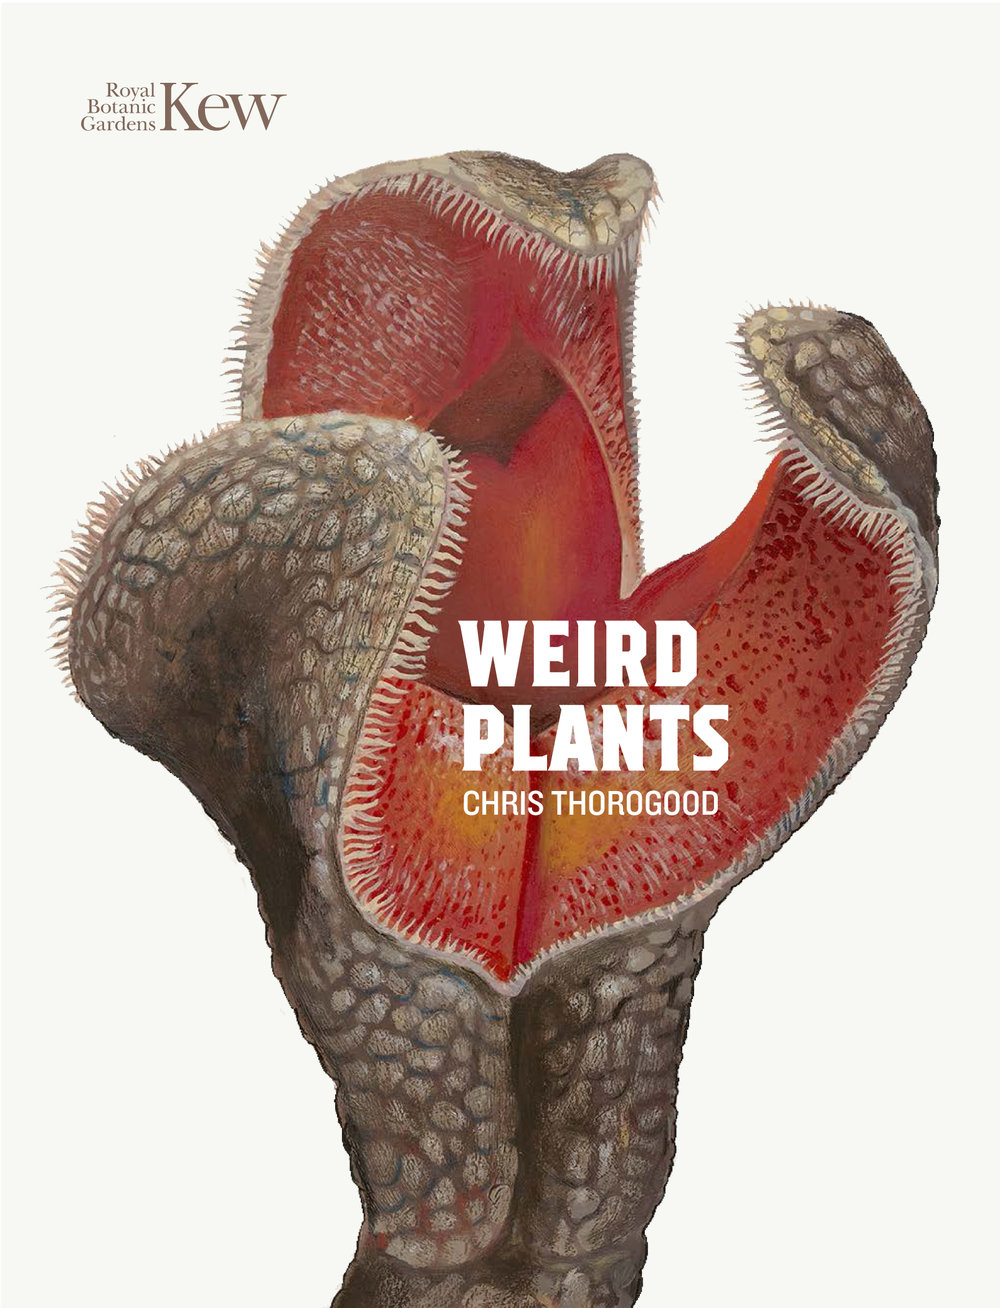 Weird plants cover_v2.jpg